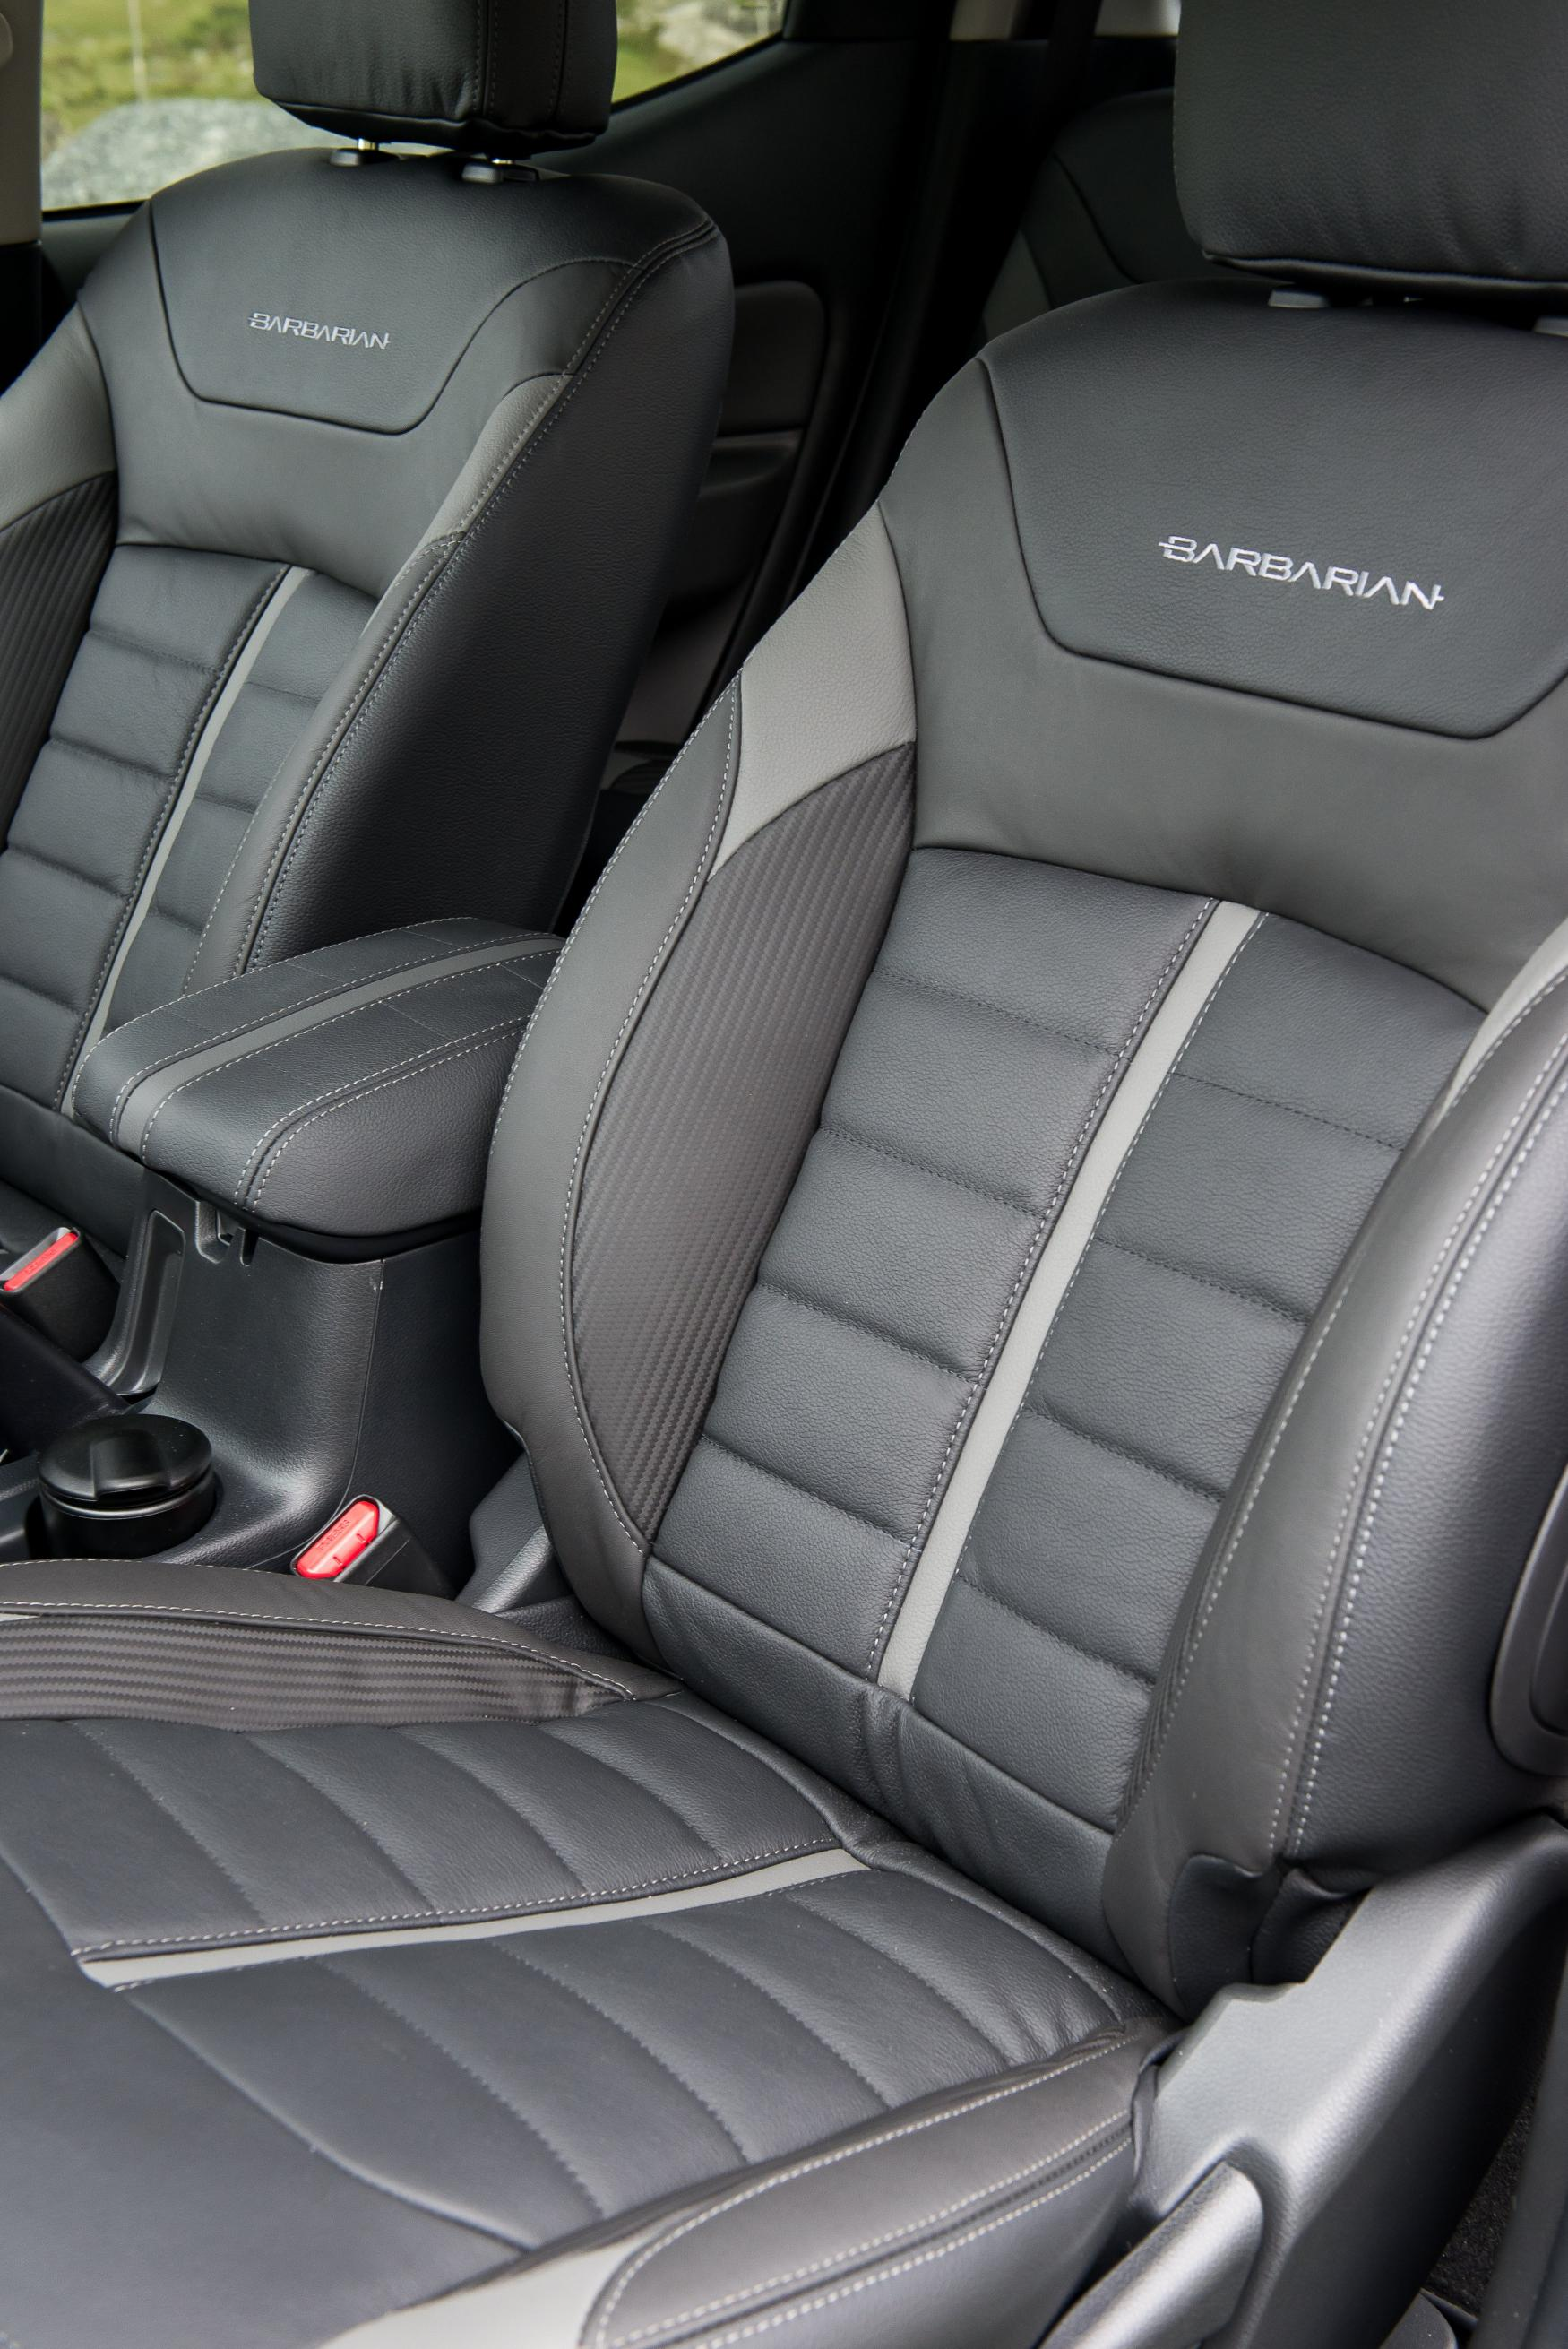 BLACK REAL LEATHER LOOK SEAT COVERS  FOR MITSUBISHI L200 PICKUP